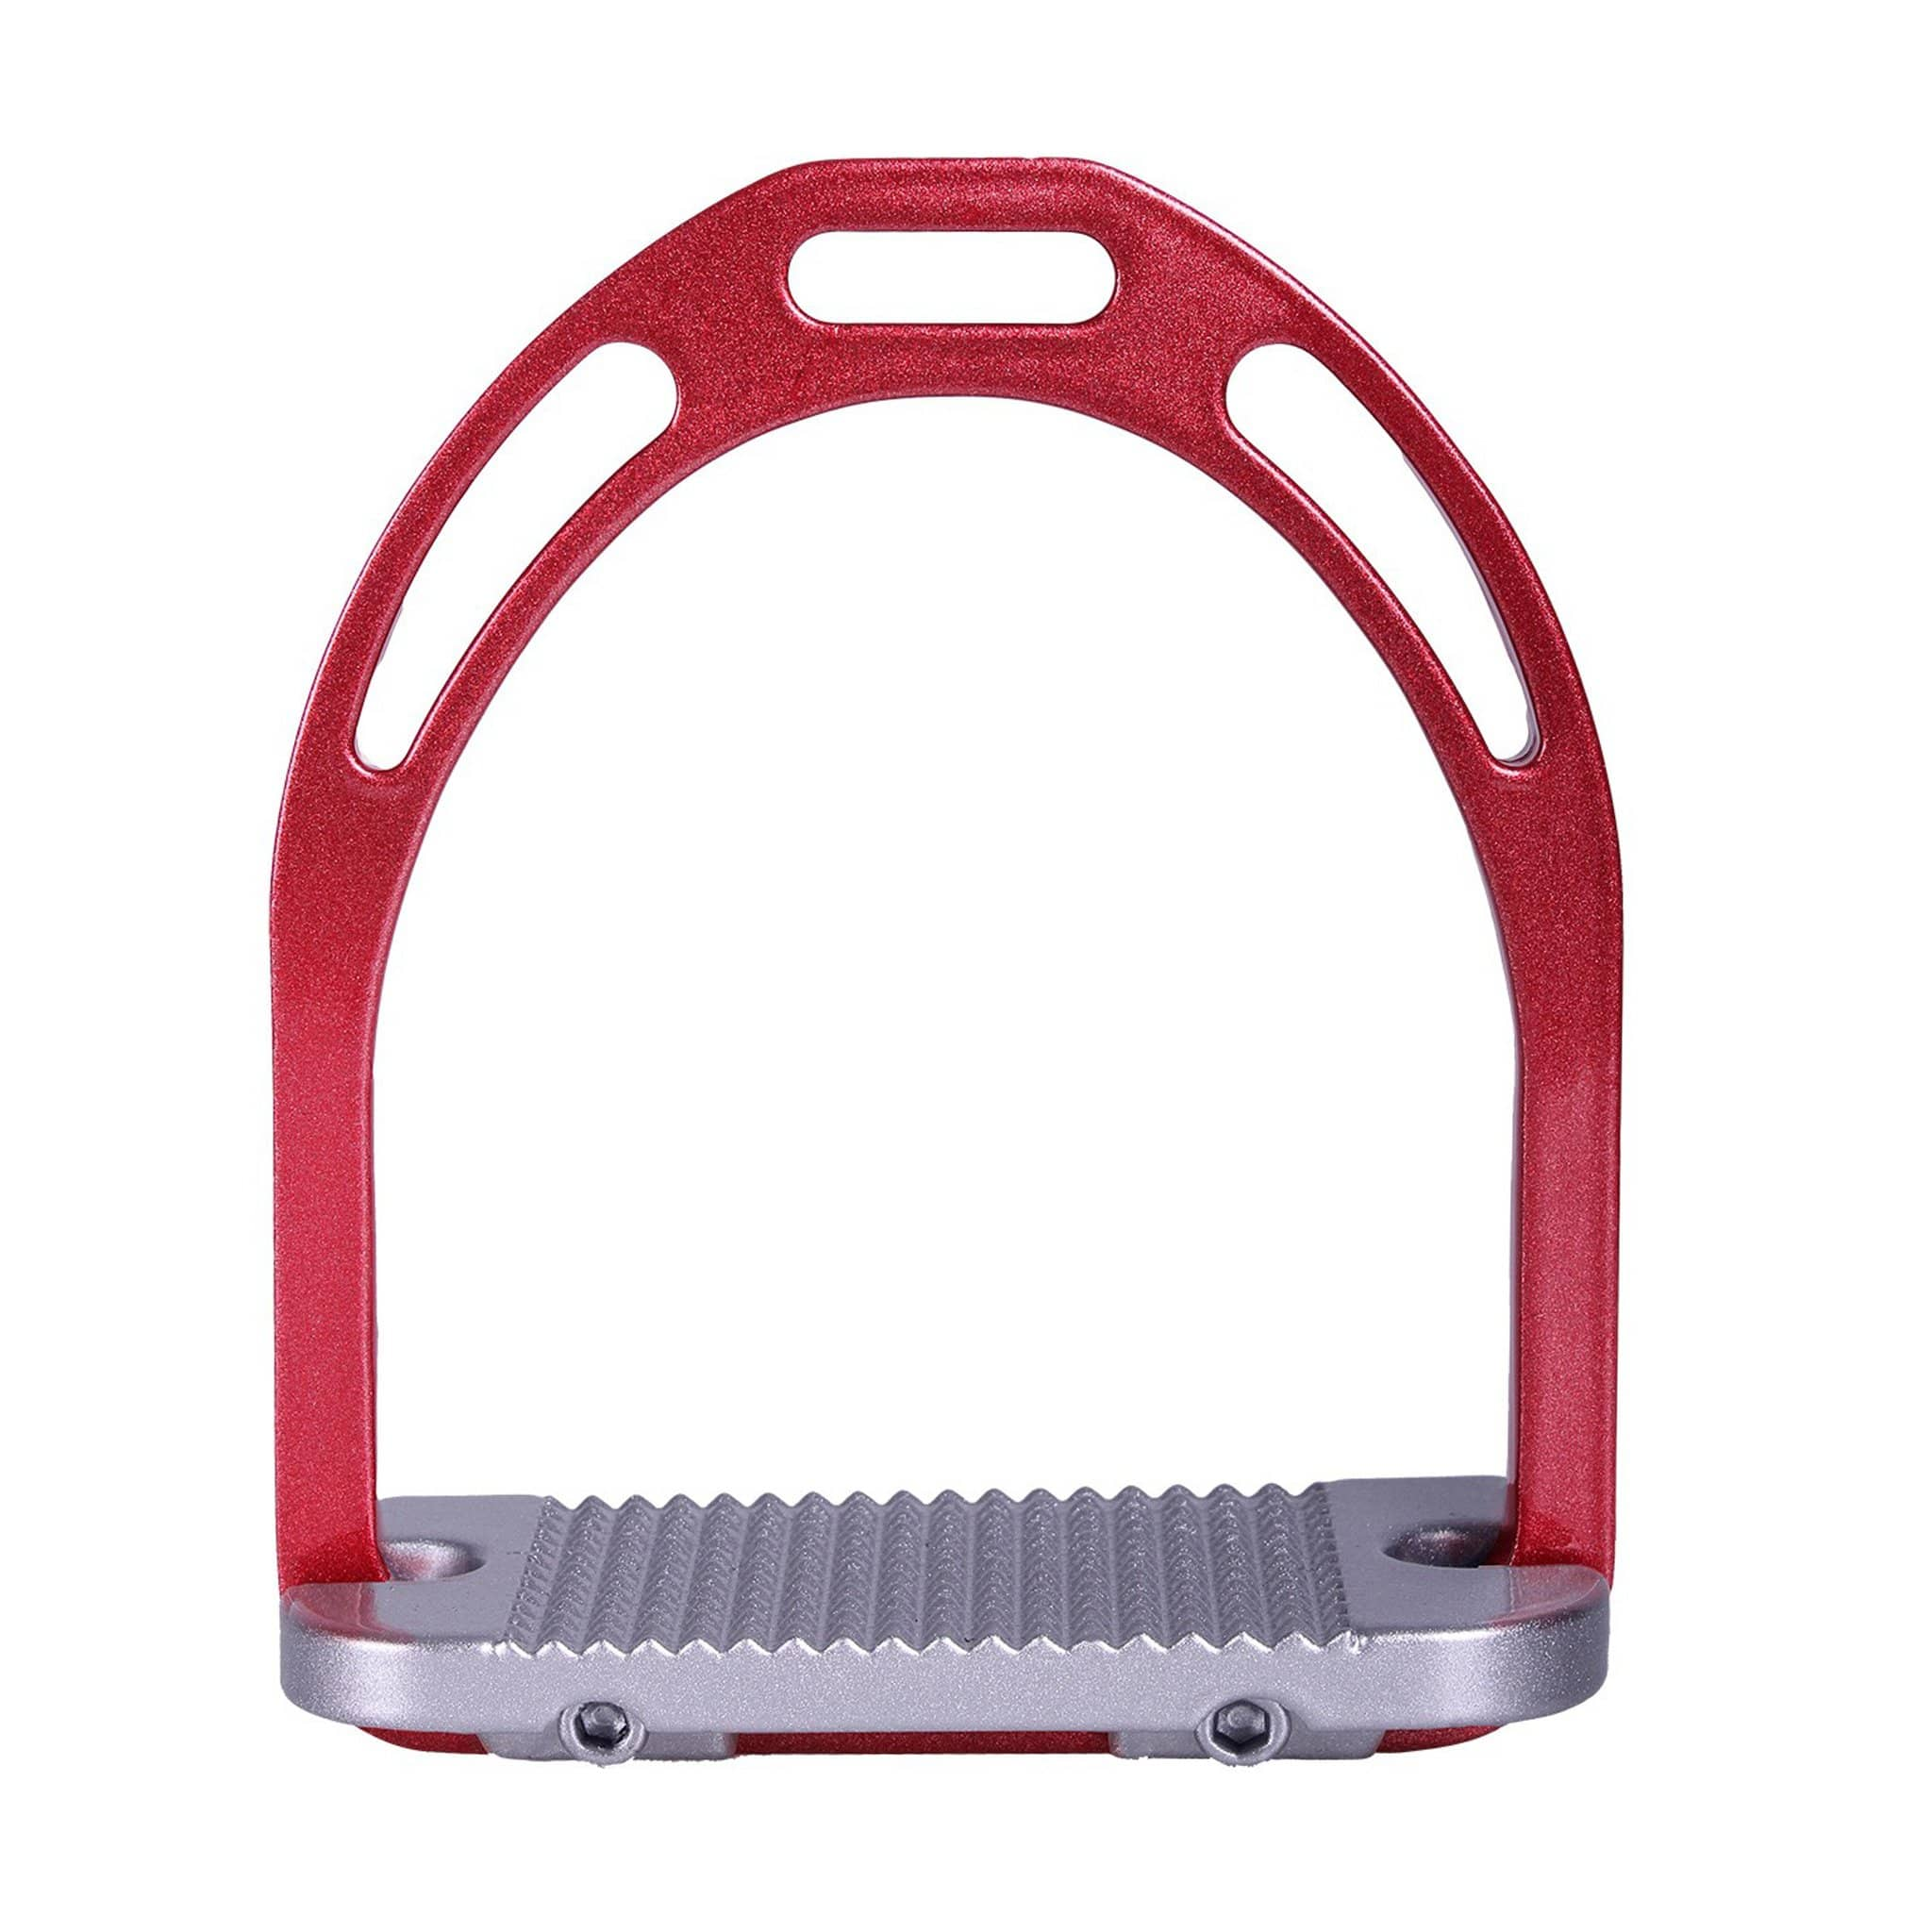 5270 QHP Two-Tone Metallic Stirrups Bright Red